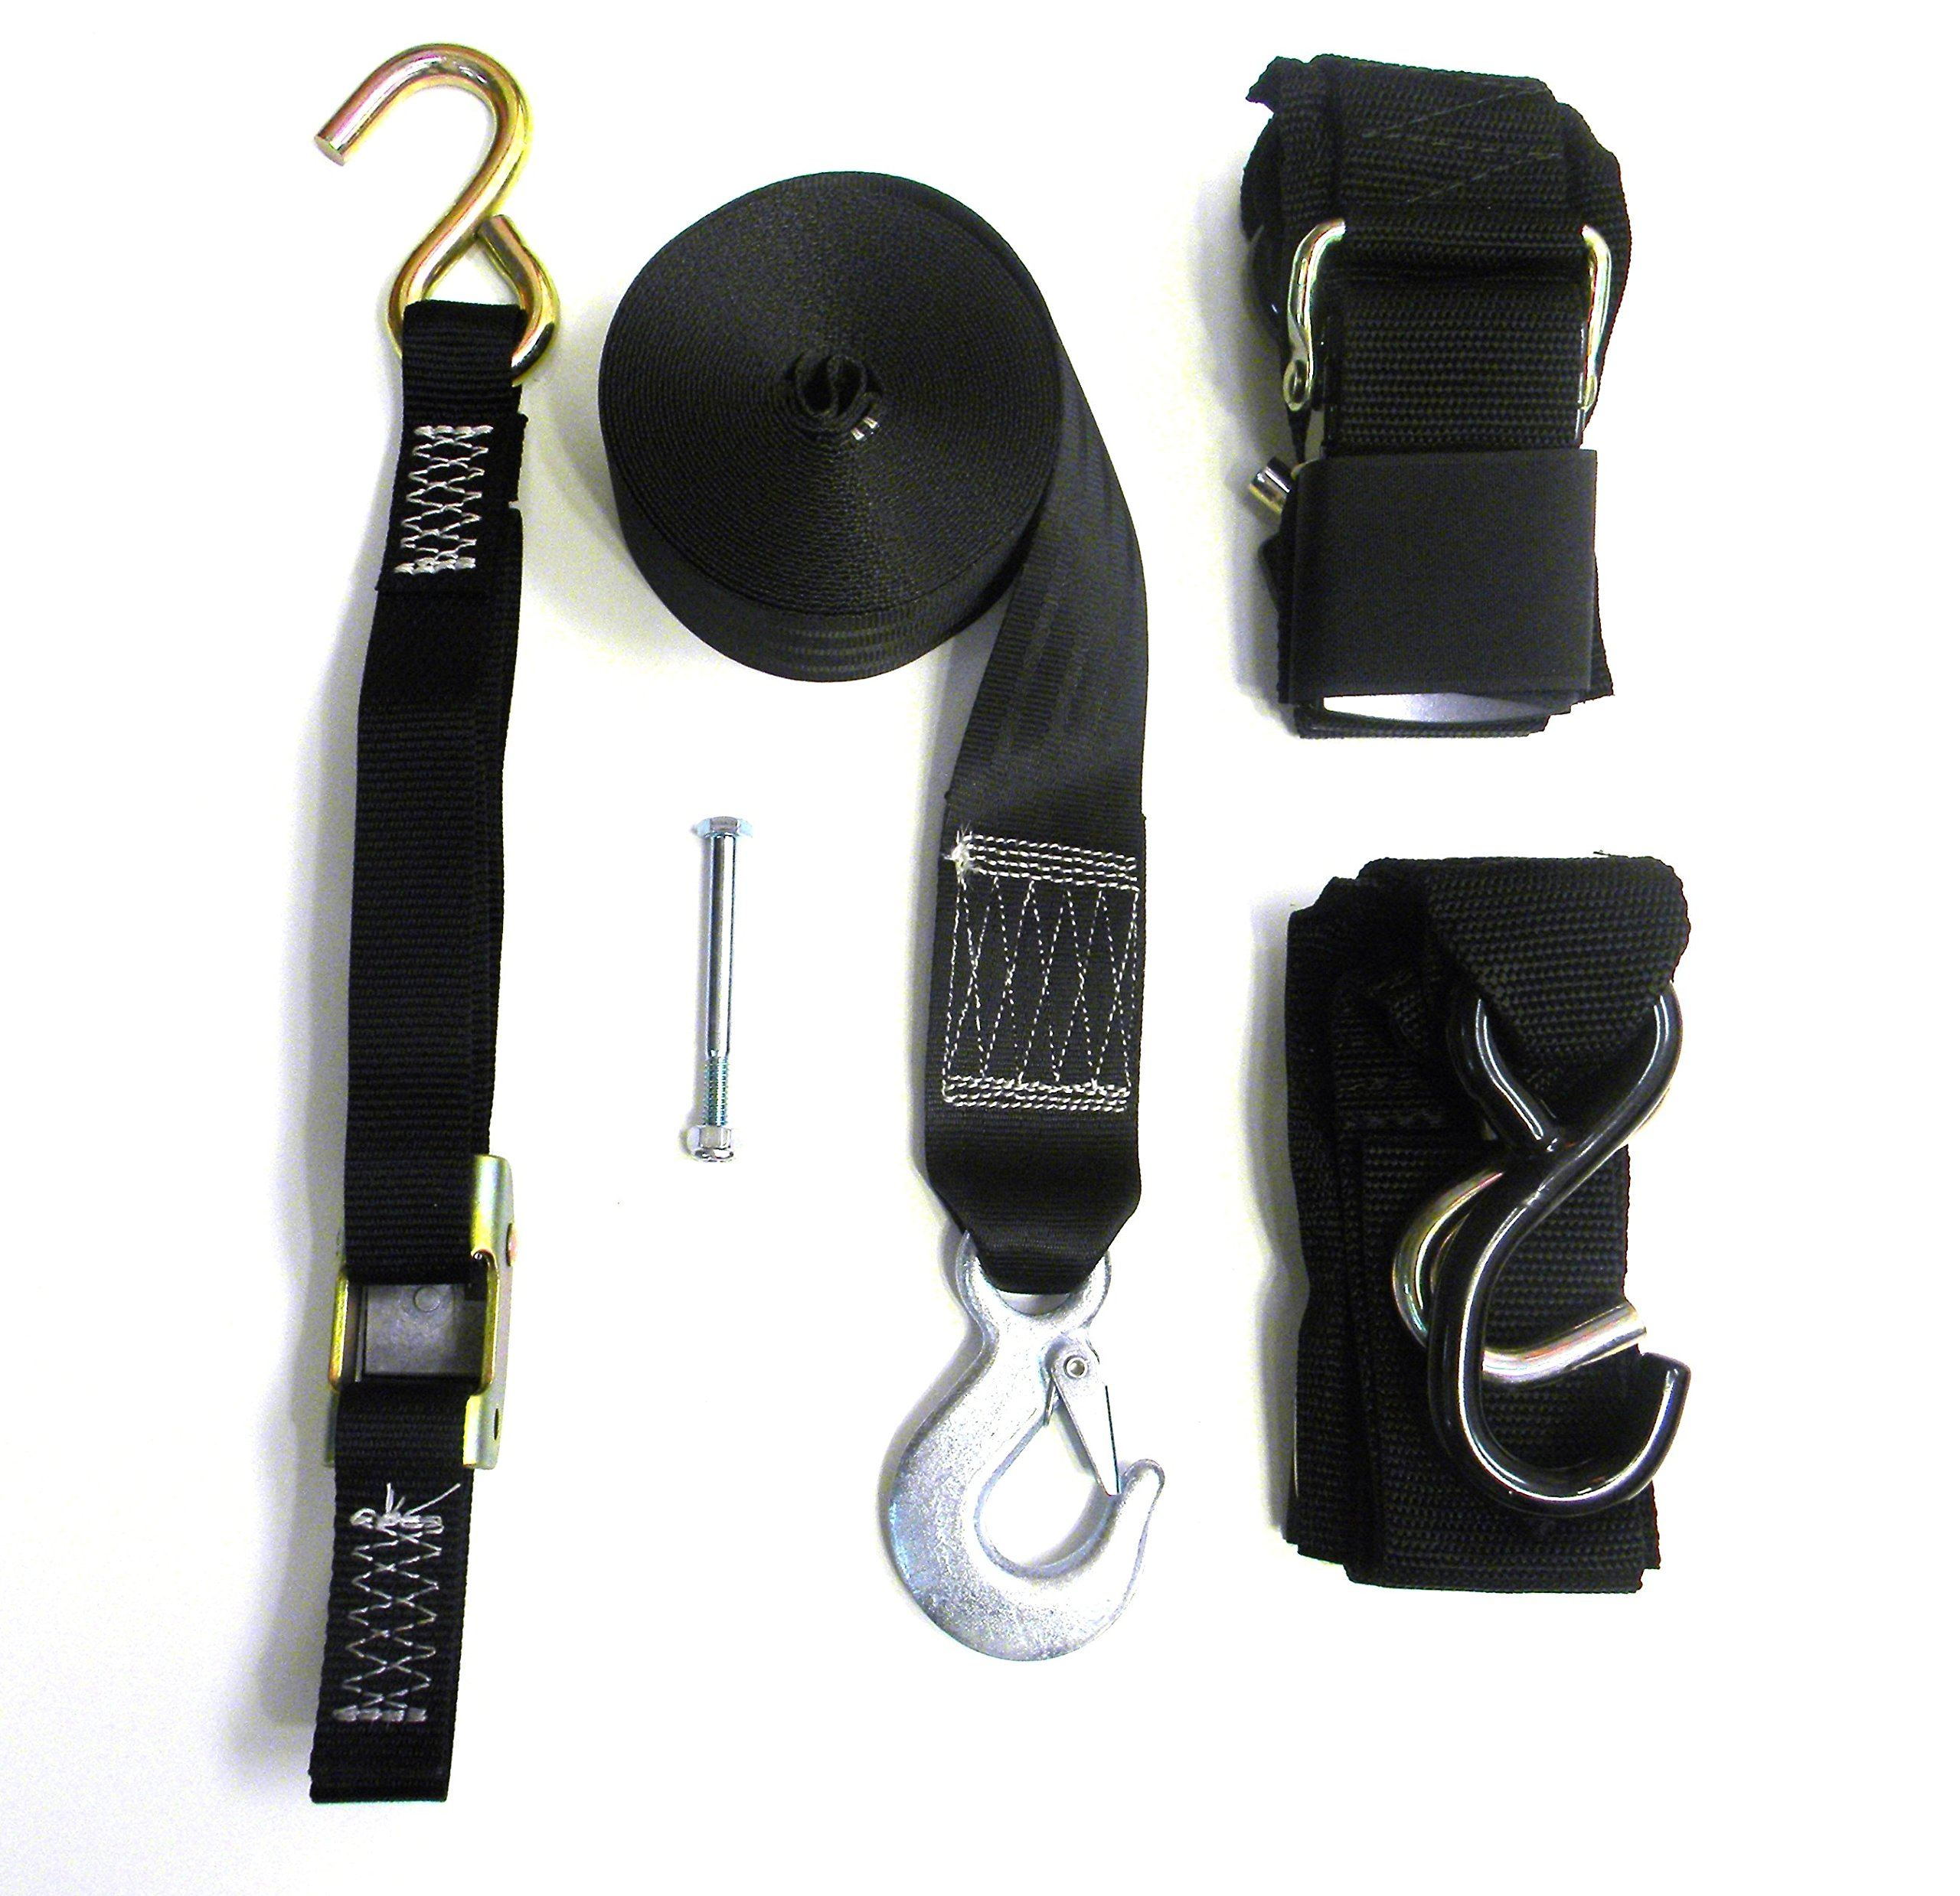 Rod Saver Tie Down Combo Pack